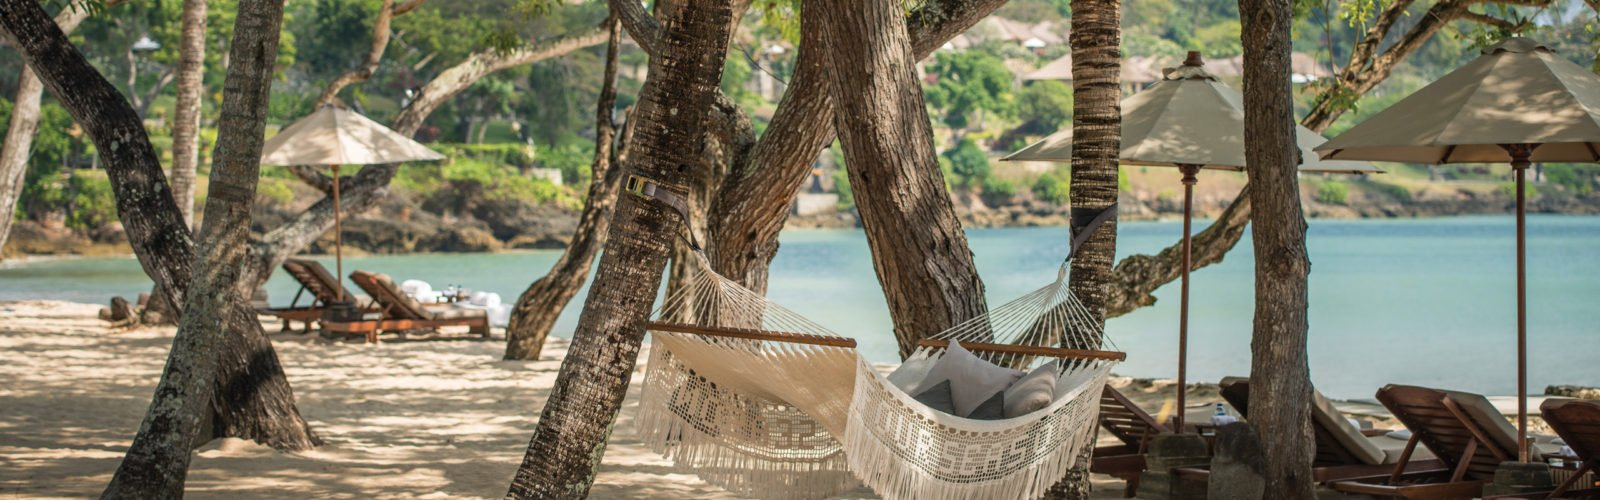 four-seasons-jimbaran-hammock